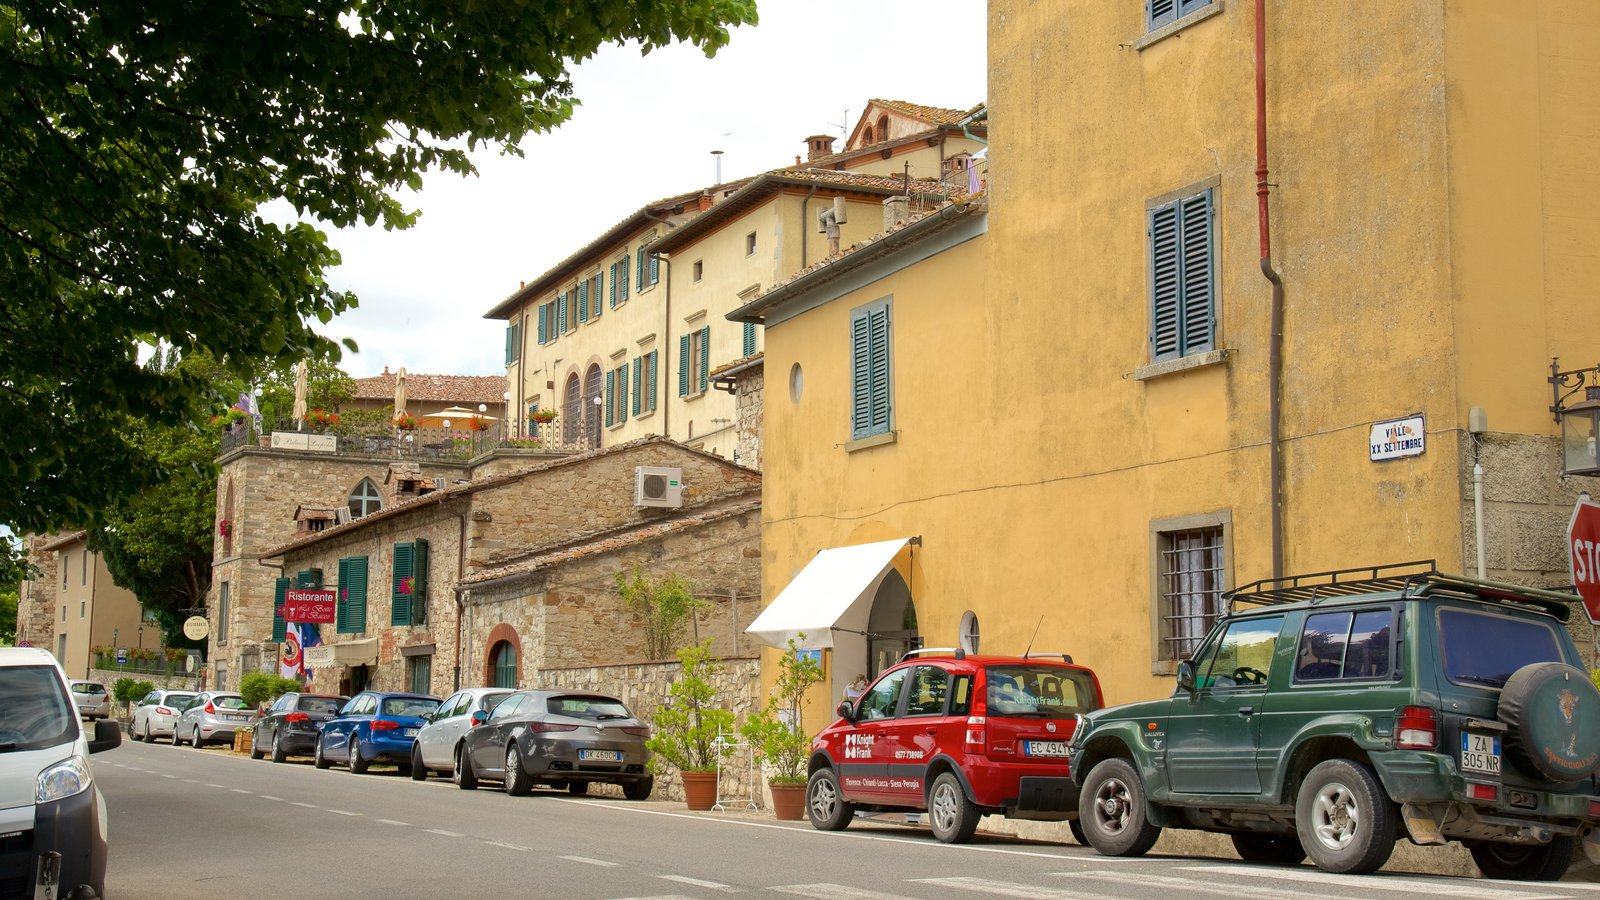 Radda in Chianti featuring street scenes, heritage architecture and a small town or village